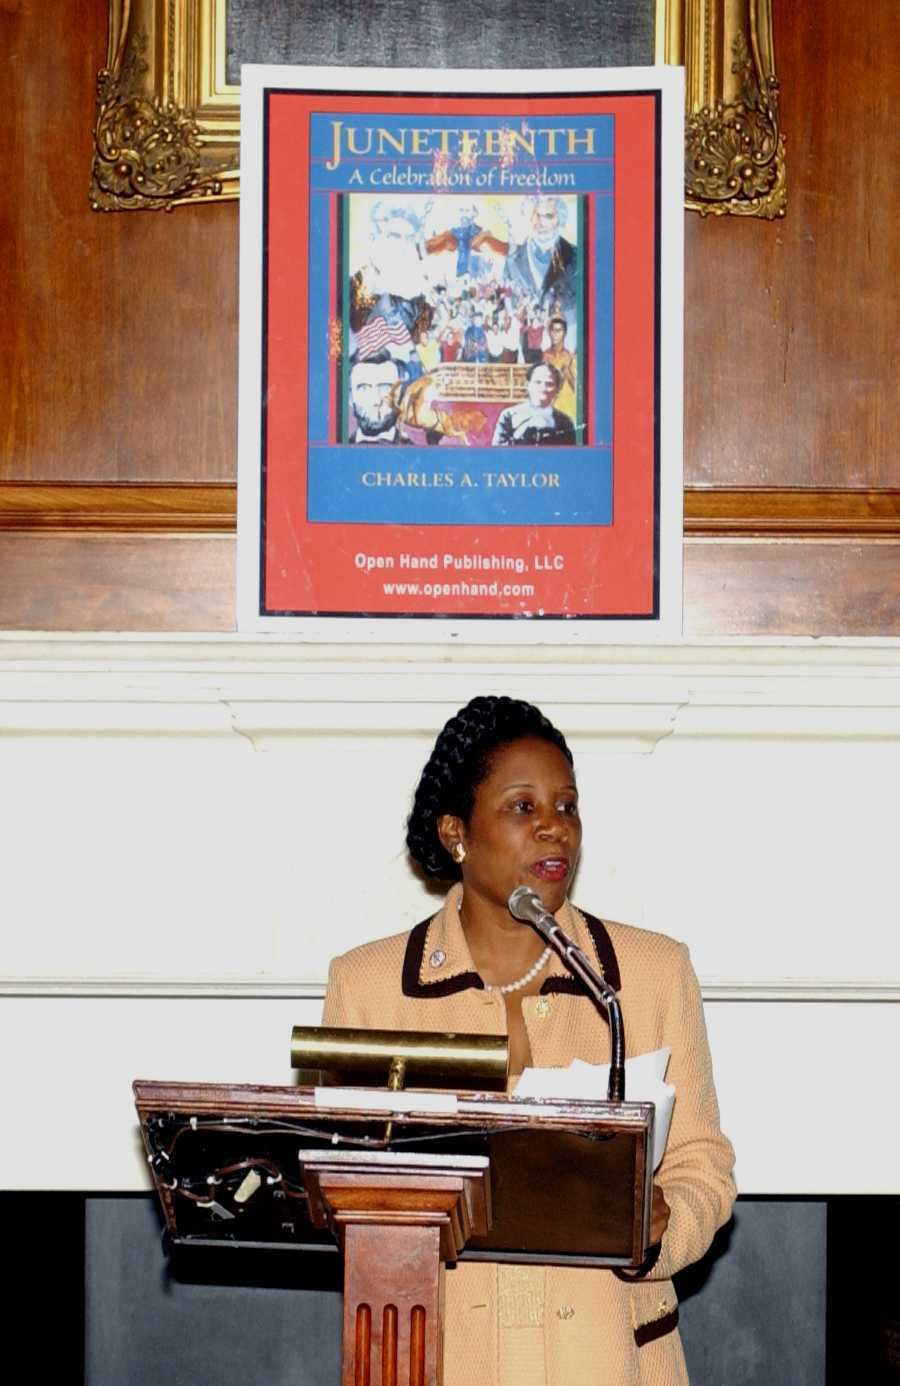 Congresswoman Sheila Jackson calls for Juneteenth to be a National Holiday in 2003.  Photo 2 of 5 in Here's What You Need to Know About the Juneteenth Flag